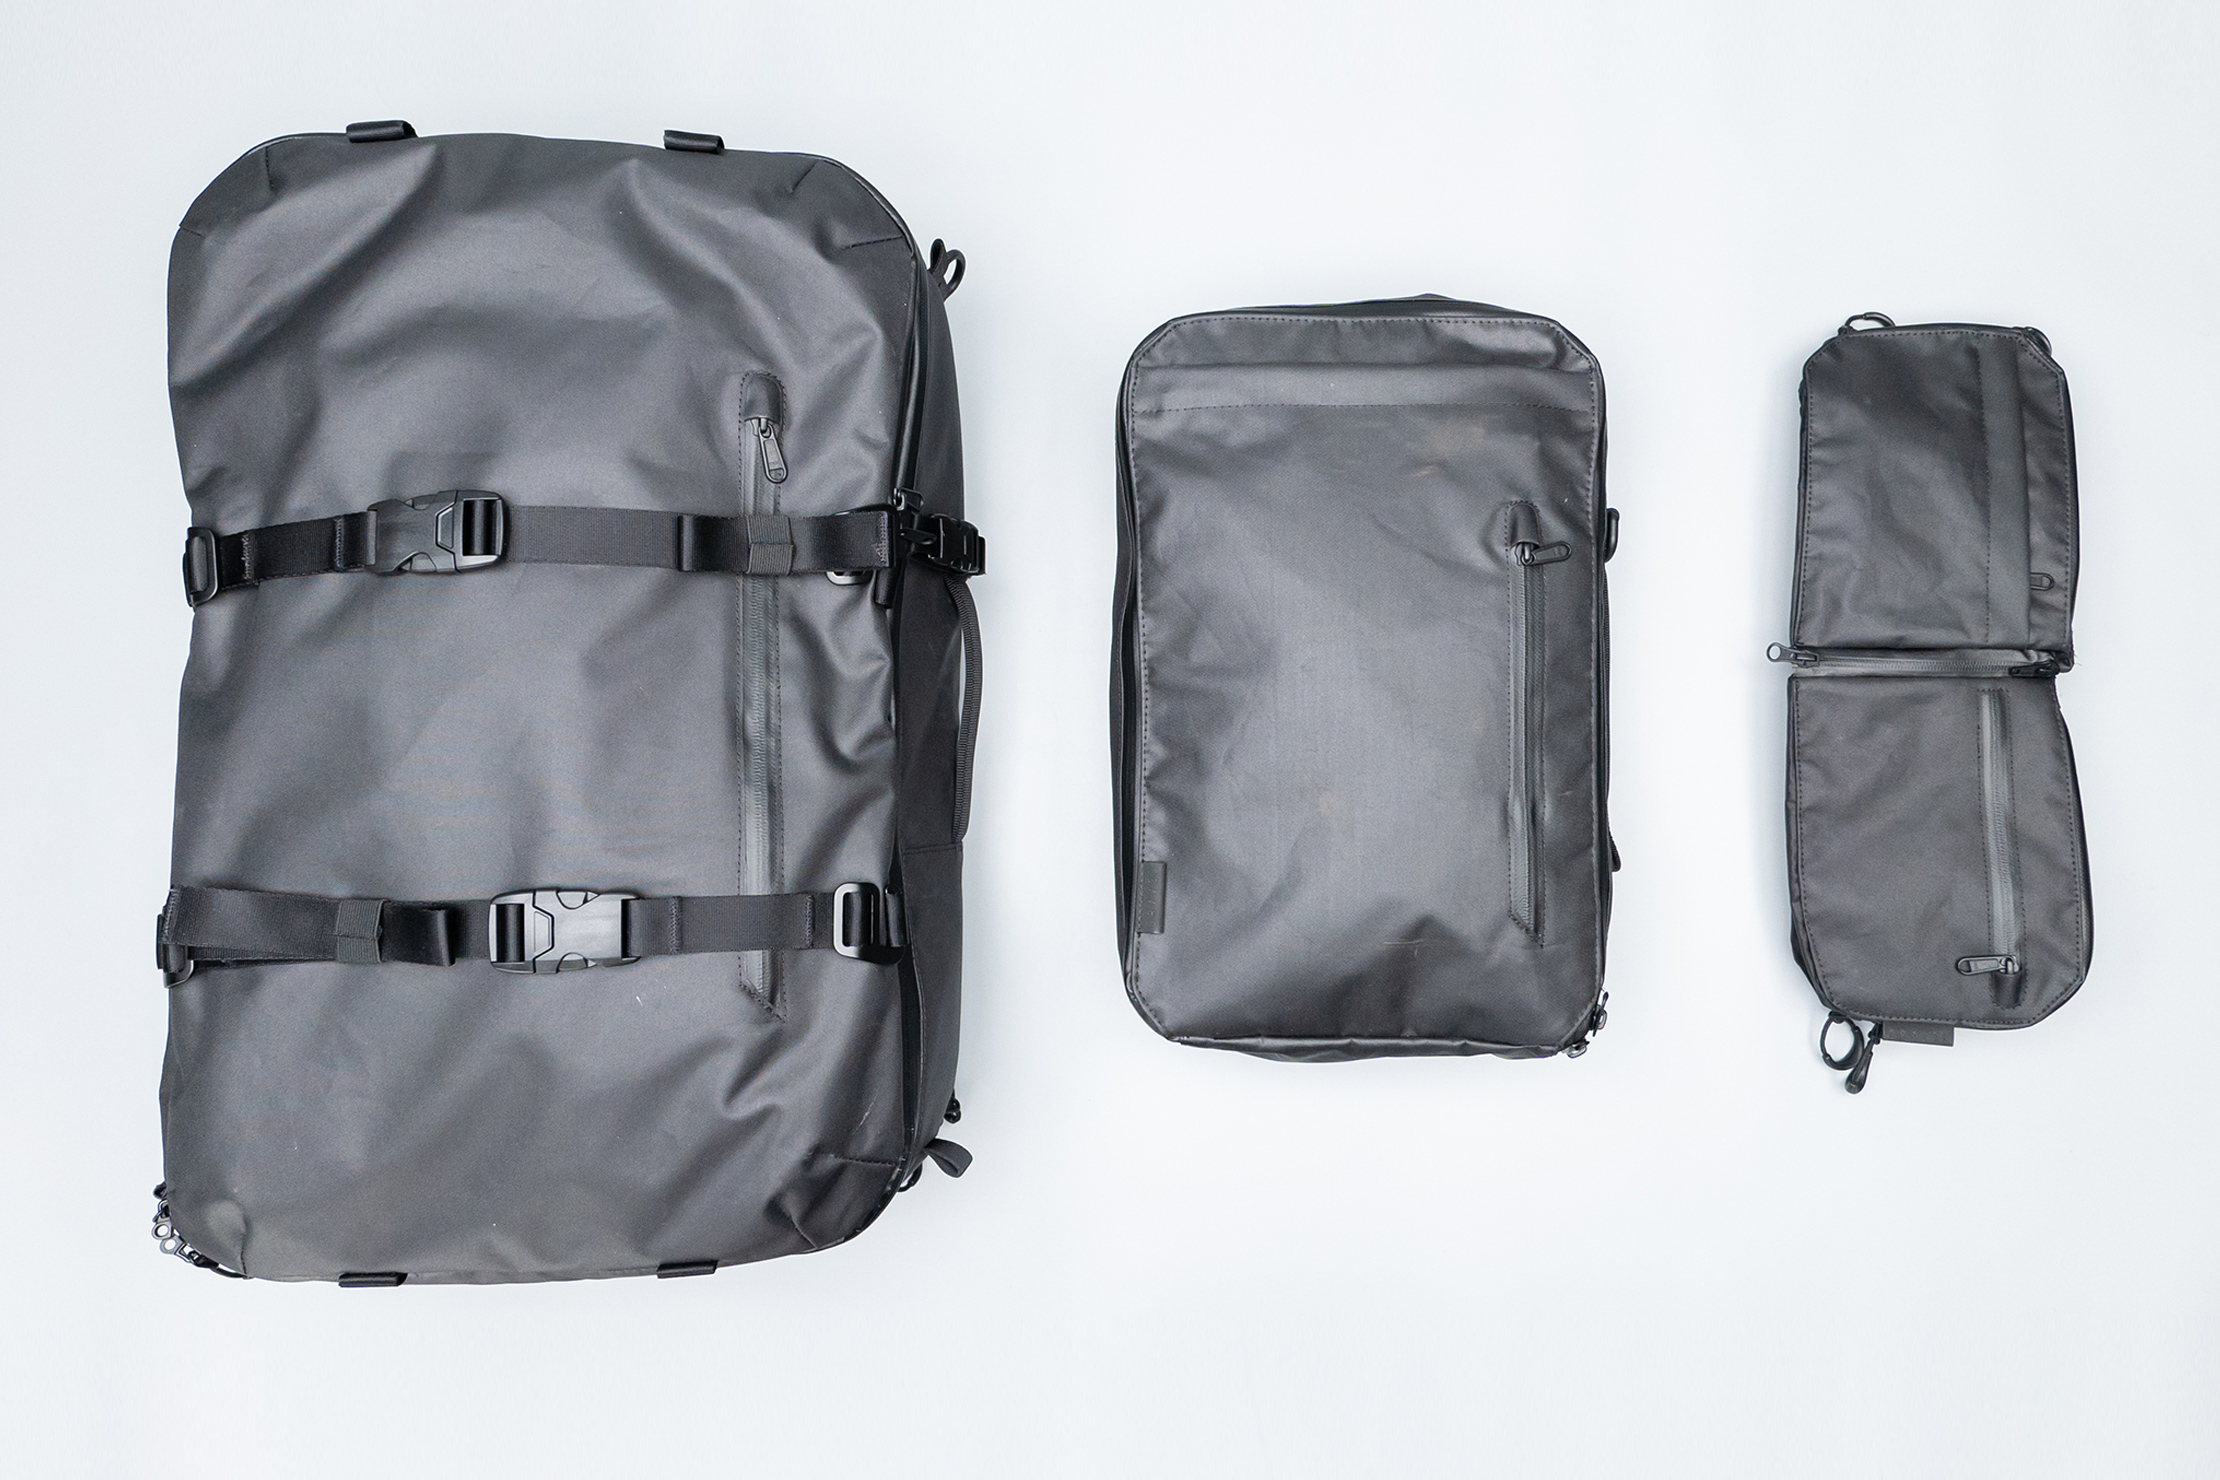 Gravel Backpack Travel System All Components Flat Lay